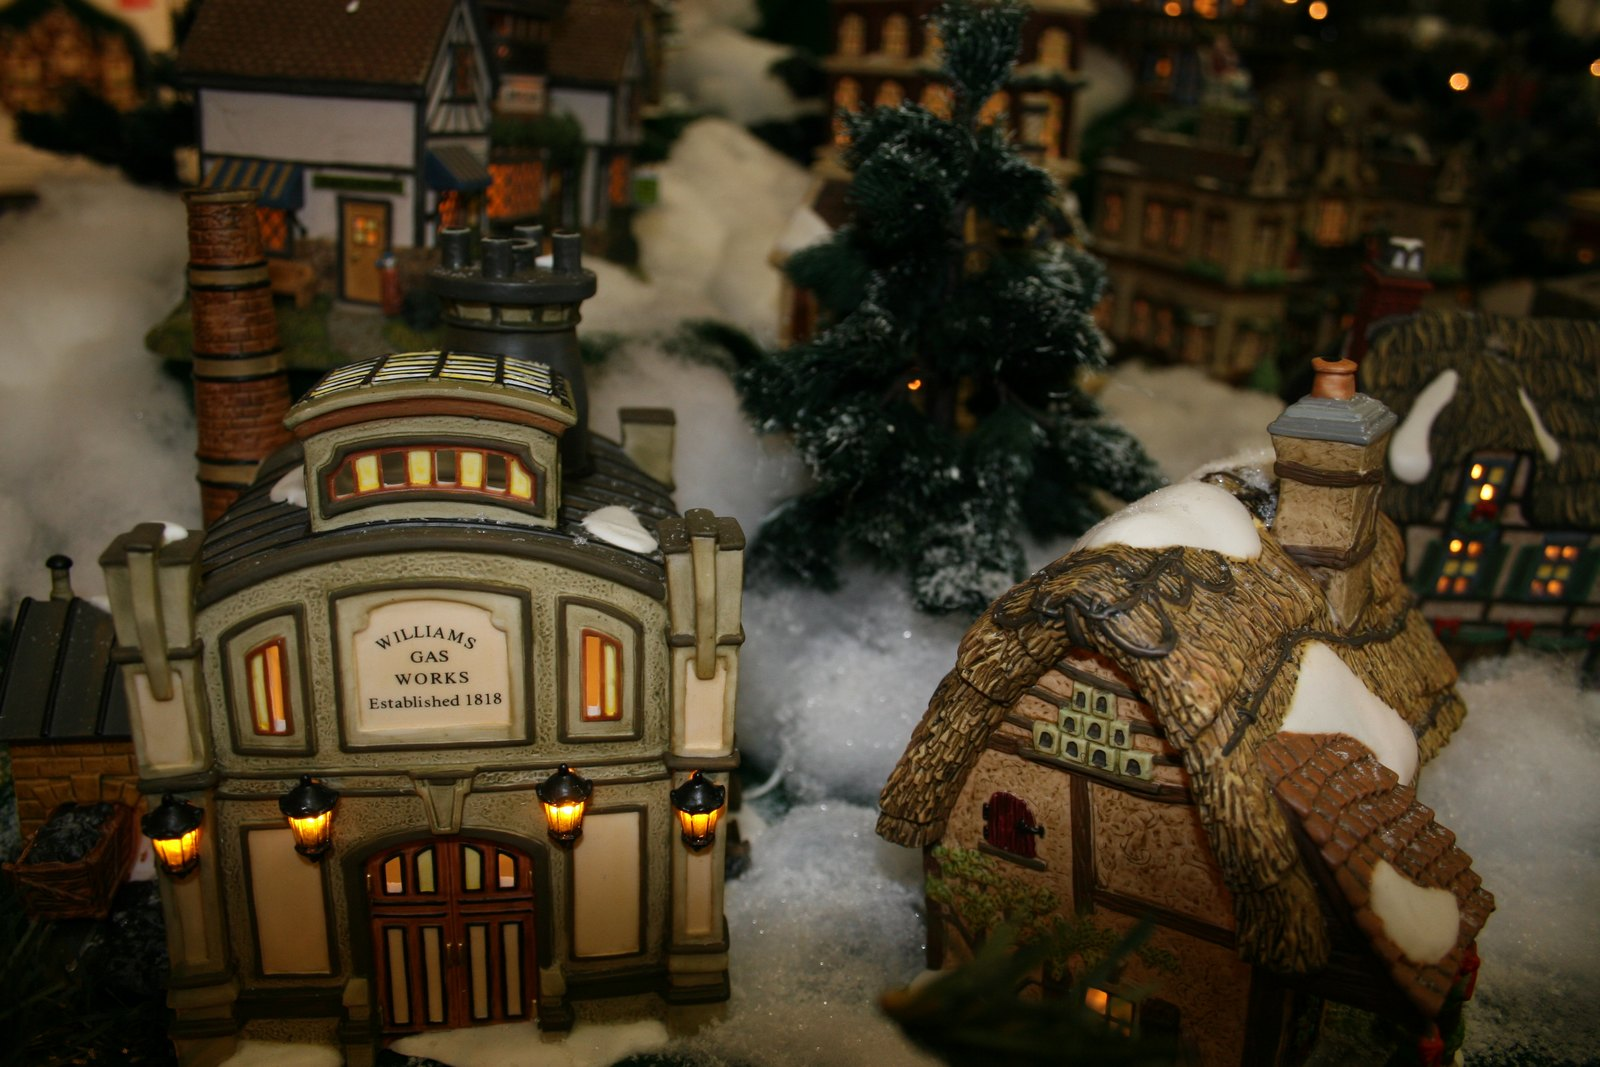 Download Christmas Buildings wallpaper Christmas Village 1600x1067